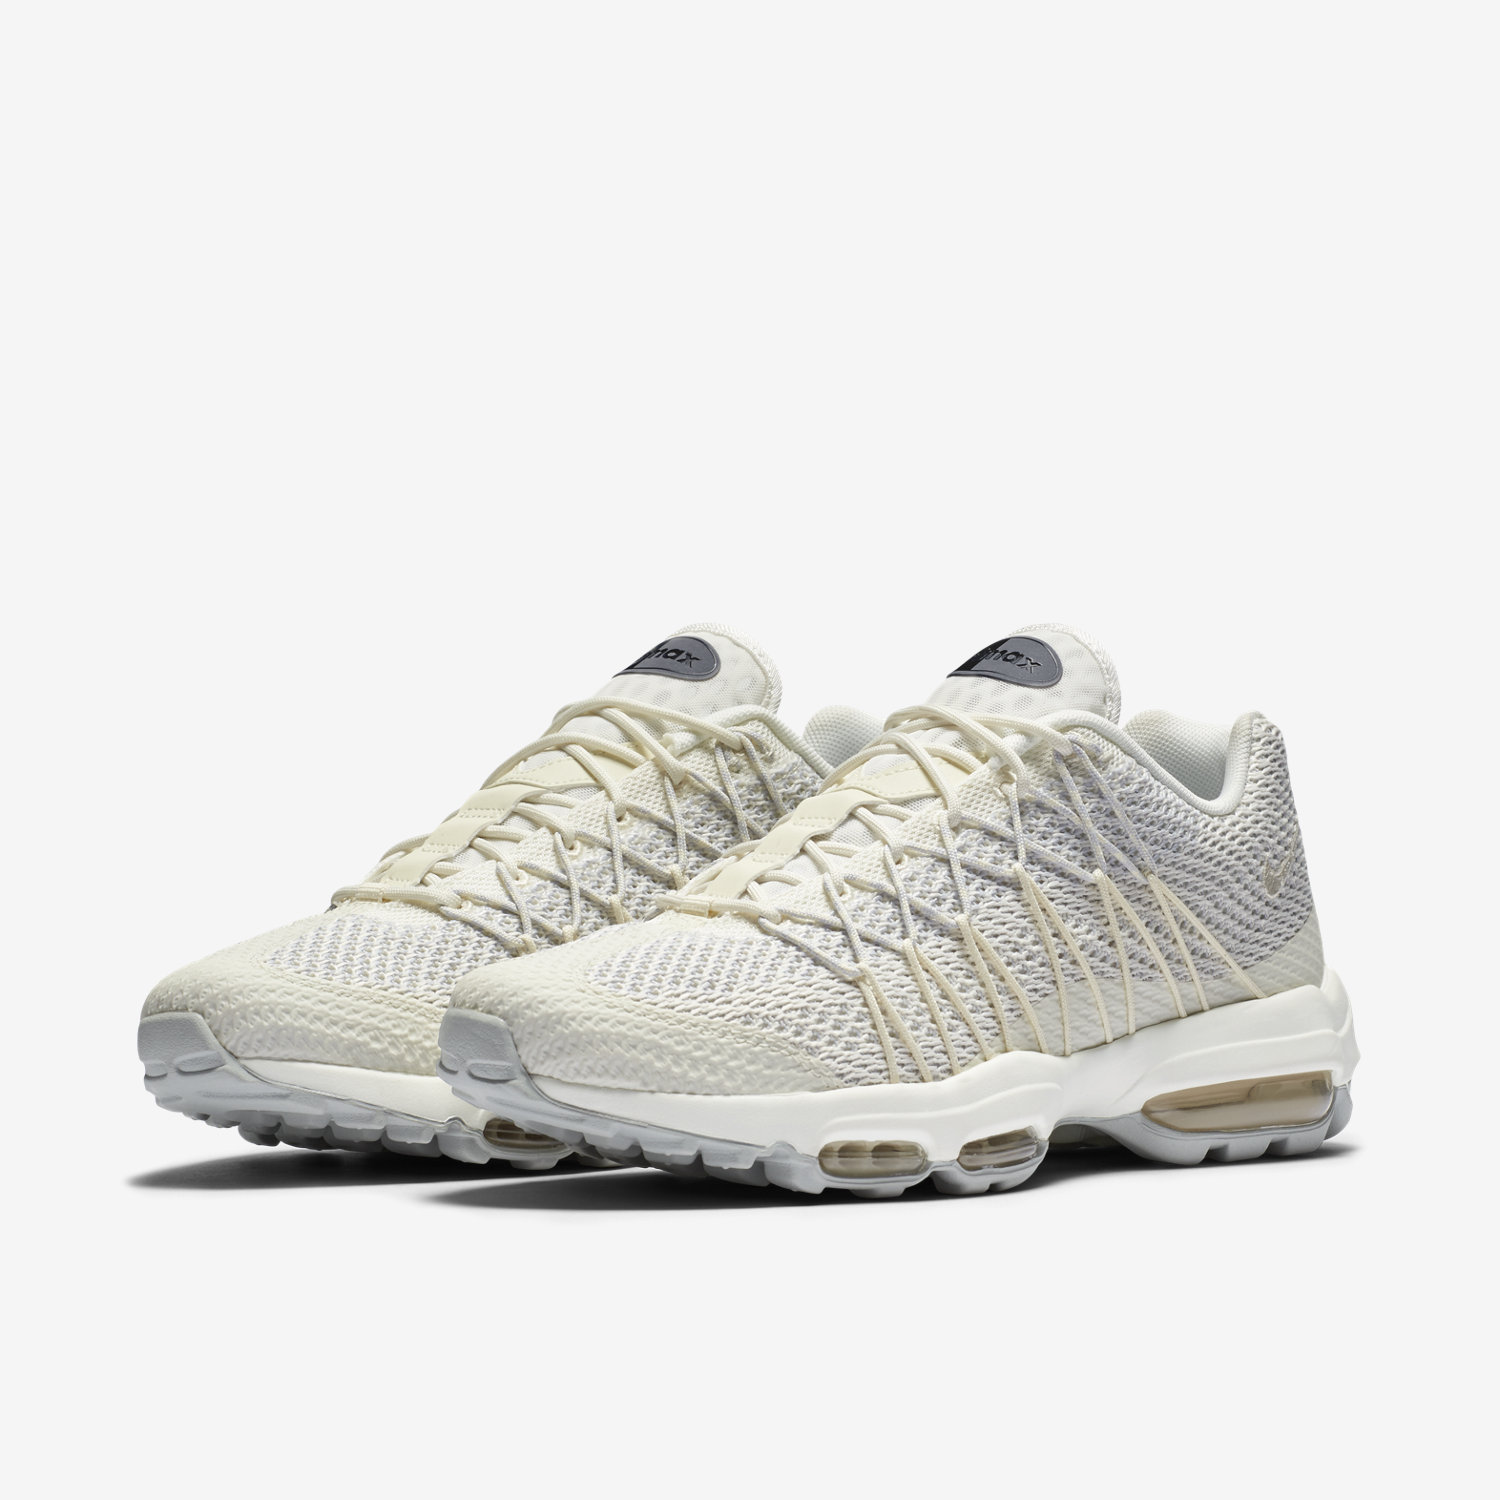 nike air max 95 ultra homme